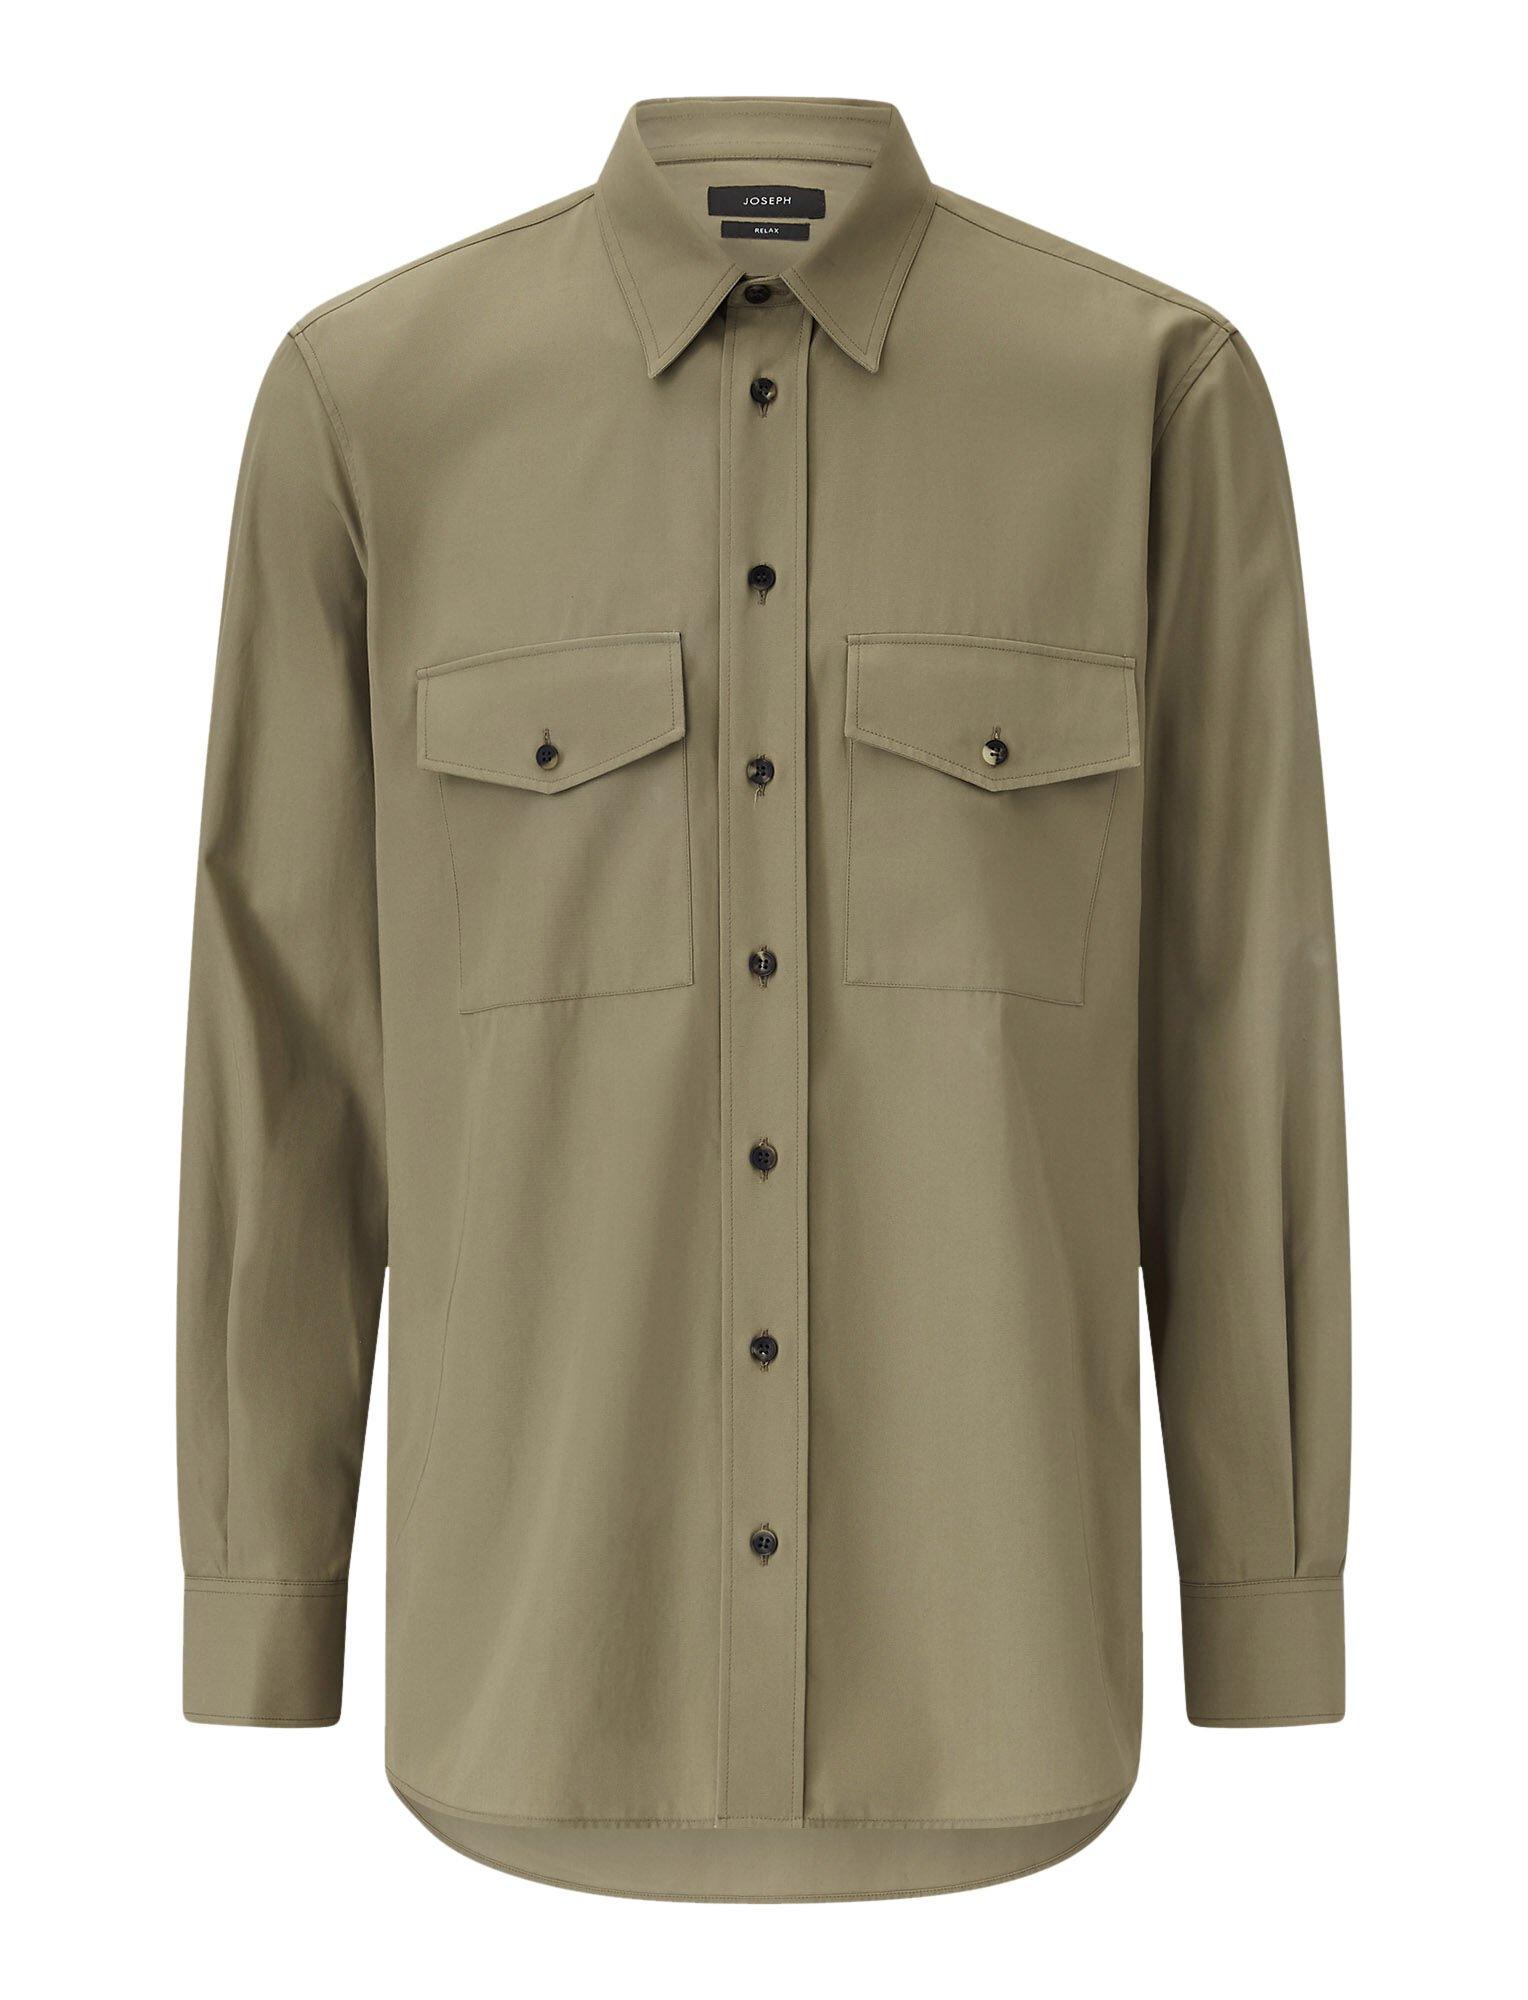 Joseph, Joseph Cotton Twill Shirt, in KHAKI